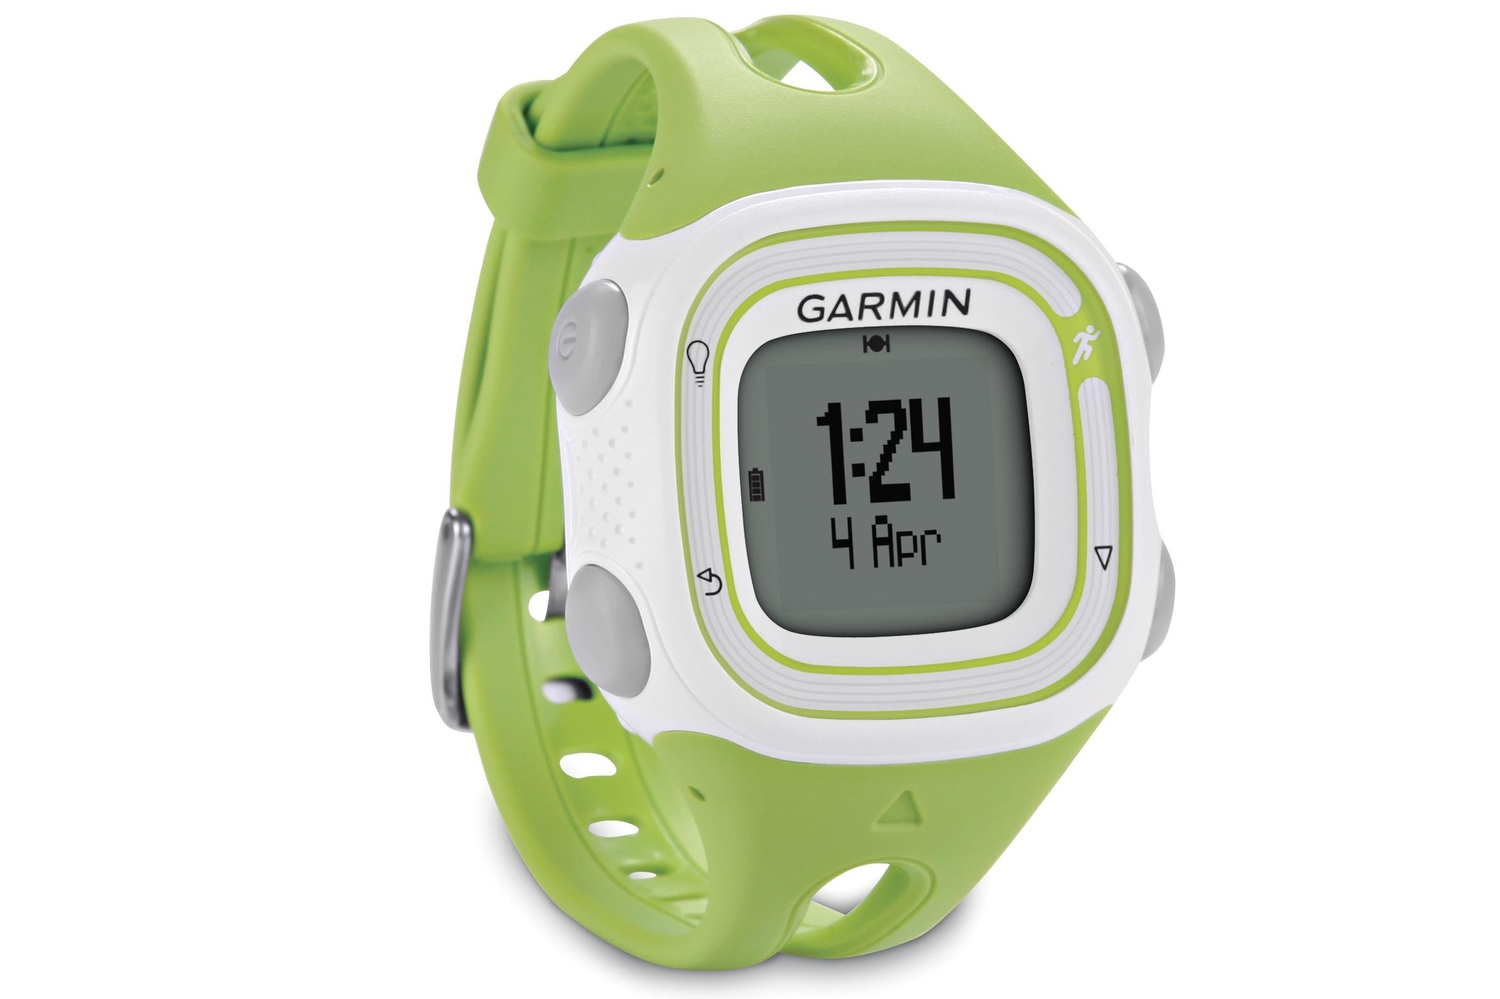 garmin forerunner 10 gps watch specifications front page. Black Bedroom Furniture Sets. Home Design Ideas